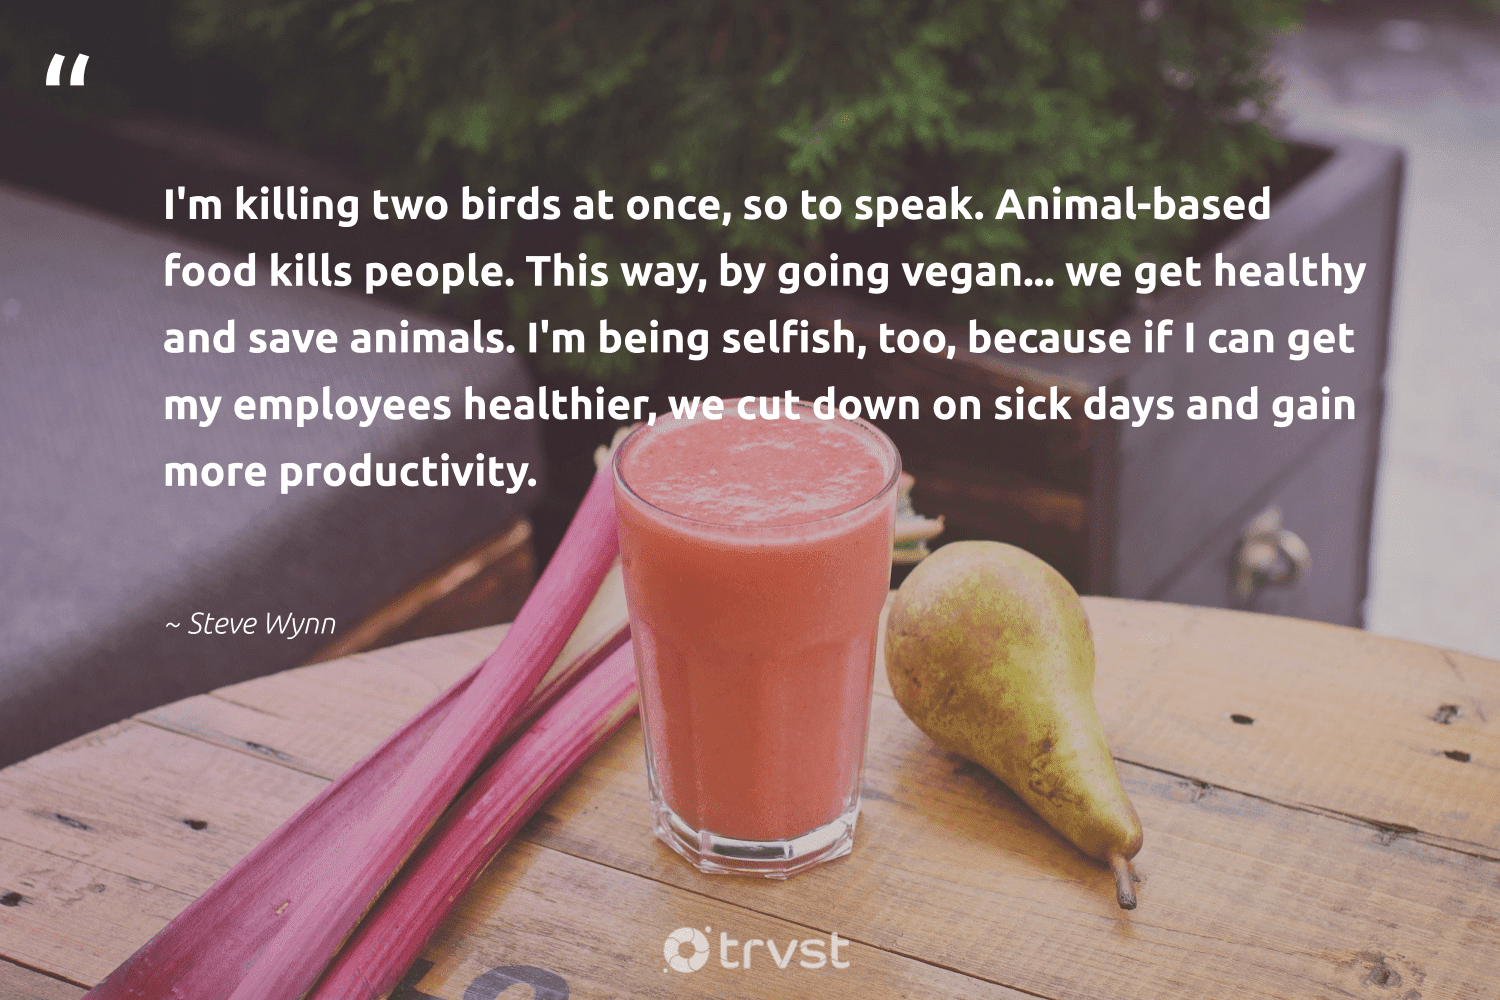 """""""I'm killing two birds at once, so to speak. Animal-based food kills people. This way, by going vegan... we get healthy and save animals. I'm being selfish, too, because if I can get my employees healthier, we cut down on sick days and gain more productivity.""""  - Steve Wynn #trvst #quotes #birds #animals #animal #food #healthy #productivity #vegan #wildlife #animallovers #sustainable"""